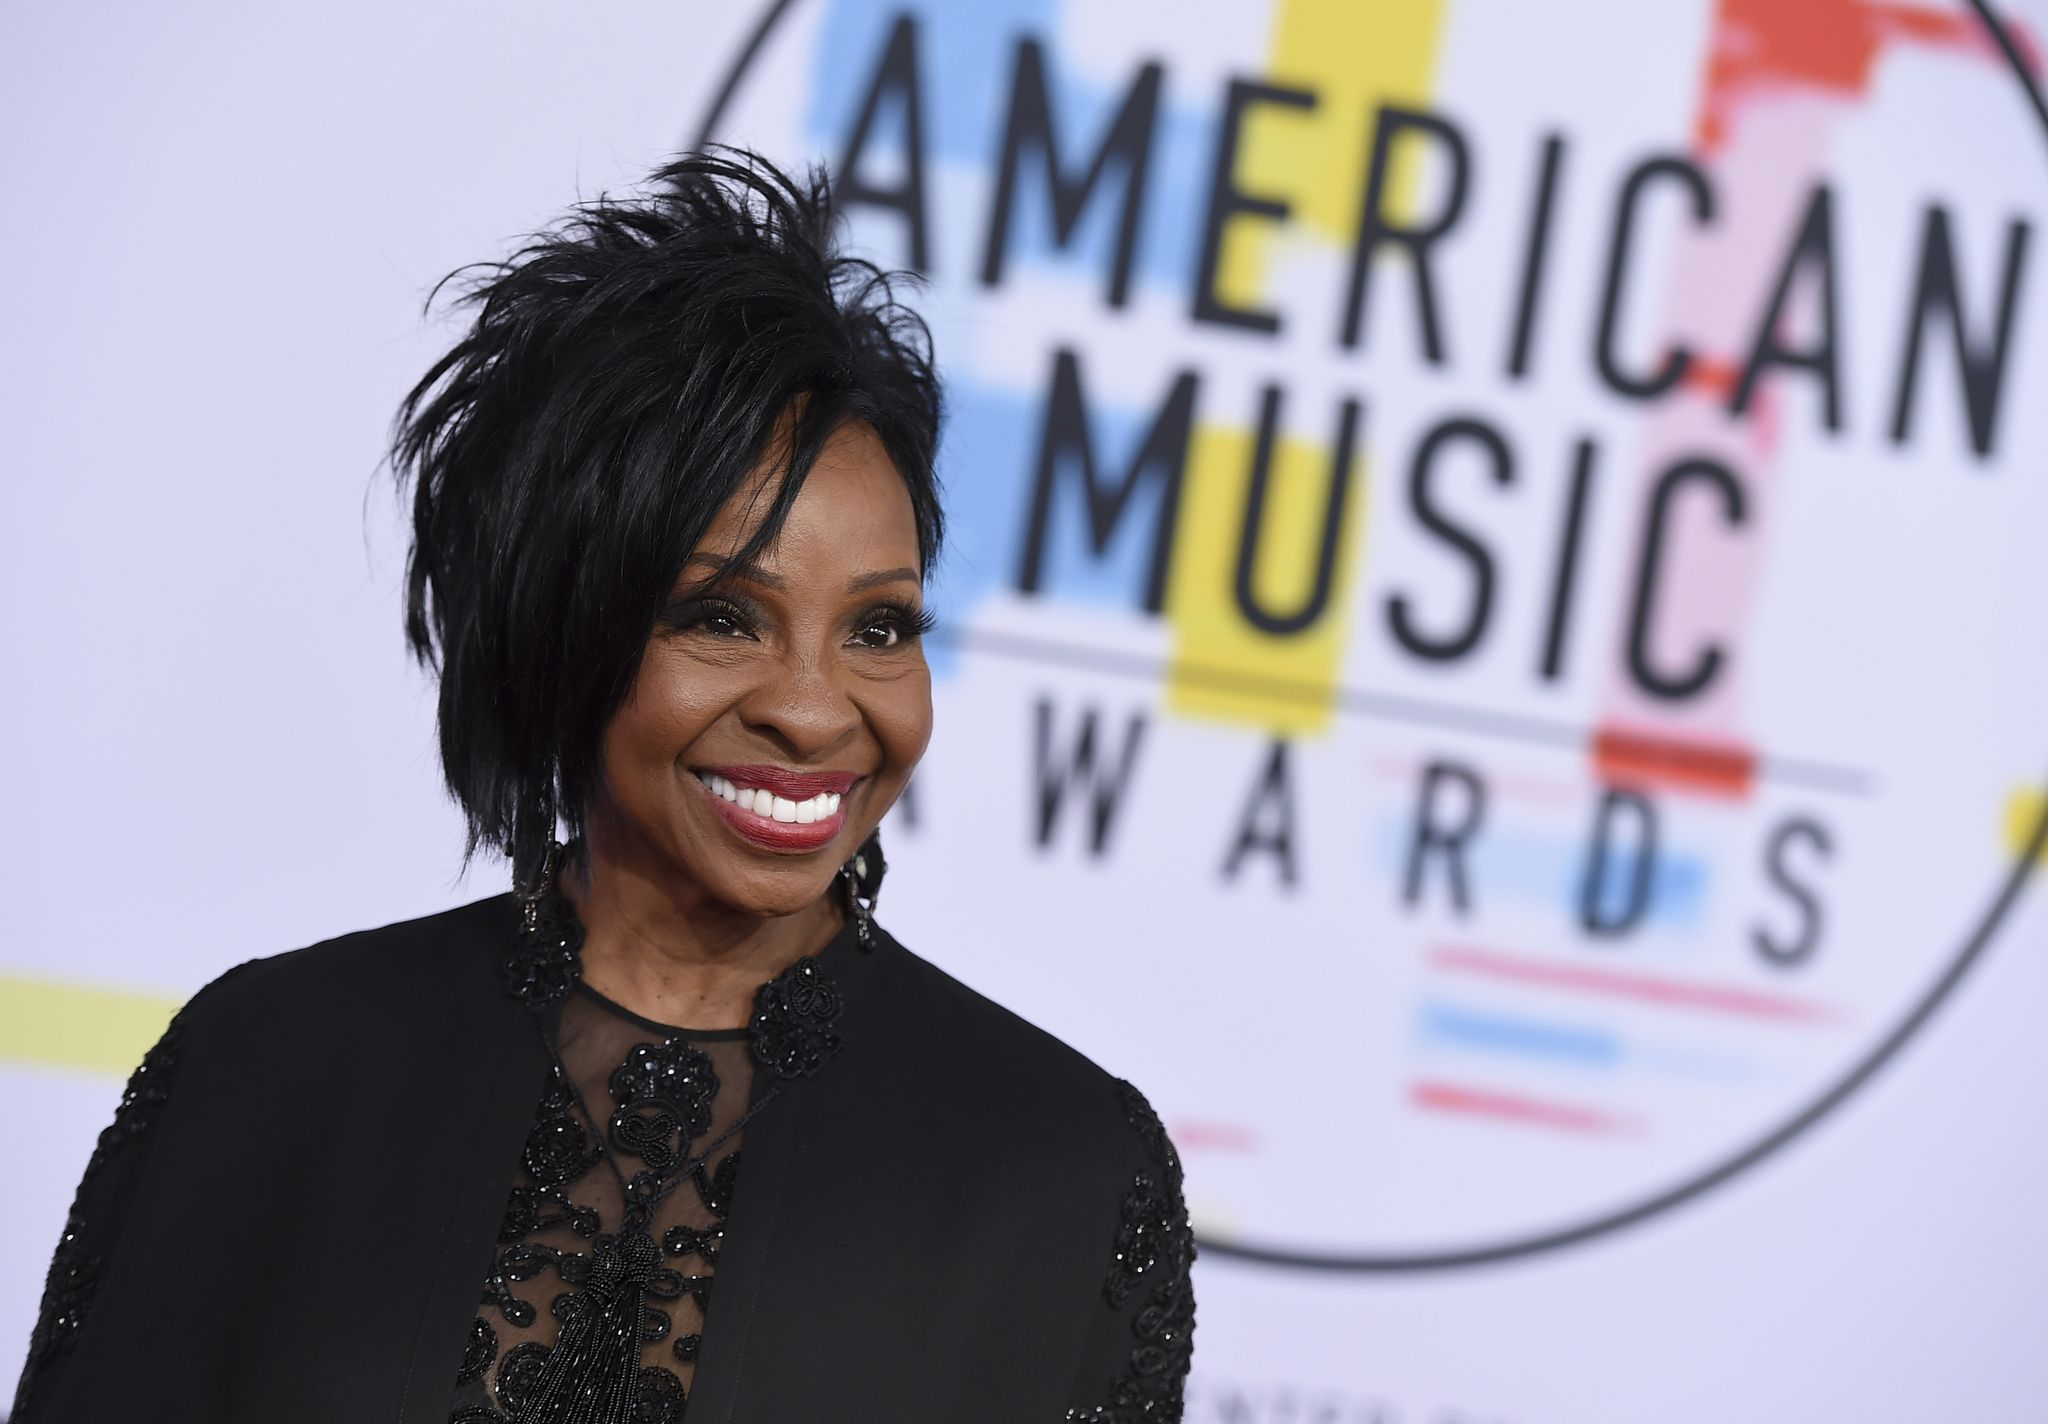 Gladys Knight aims to 'give the anthem back its voice,' 'free it' from prejudice at Super Bowl LIII